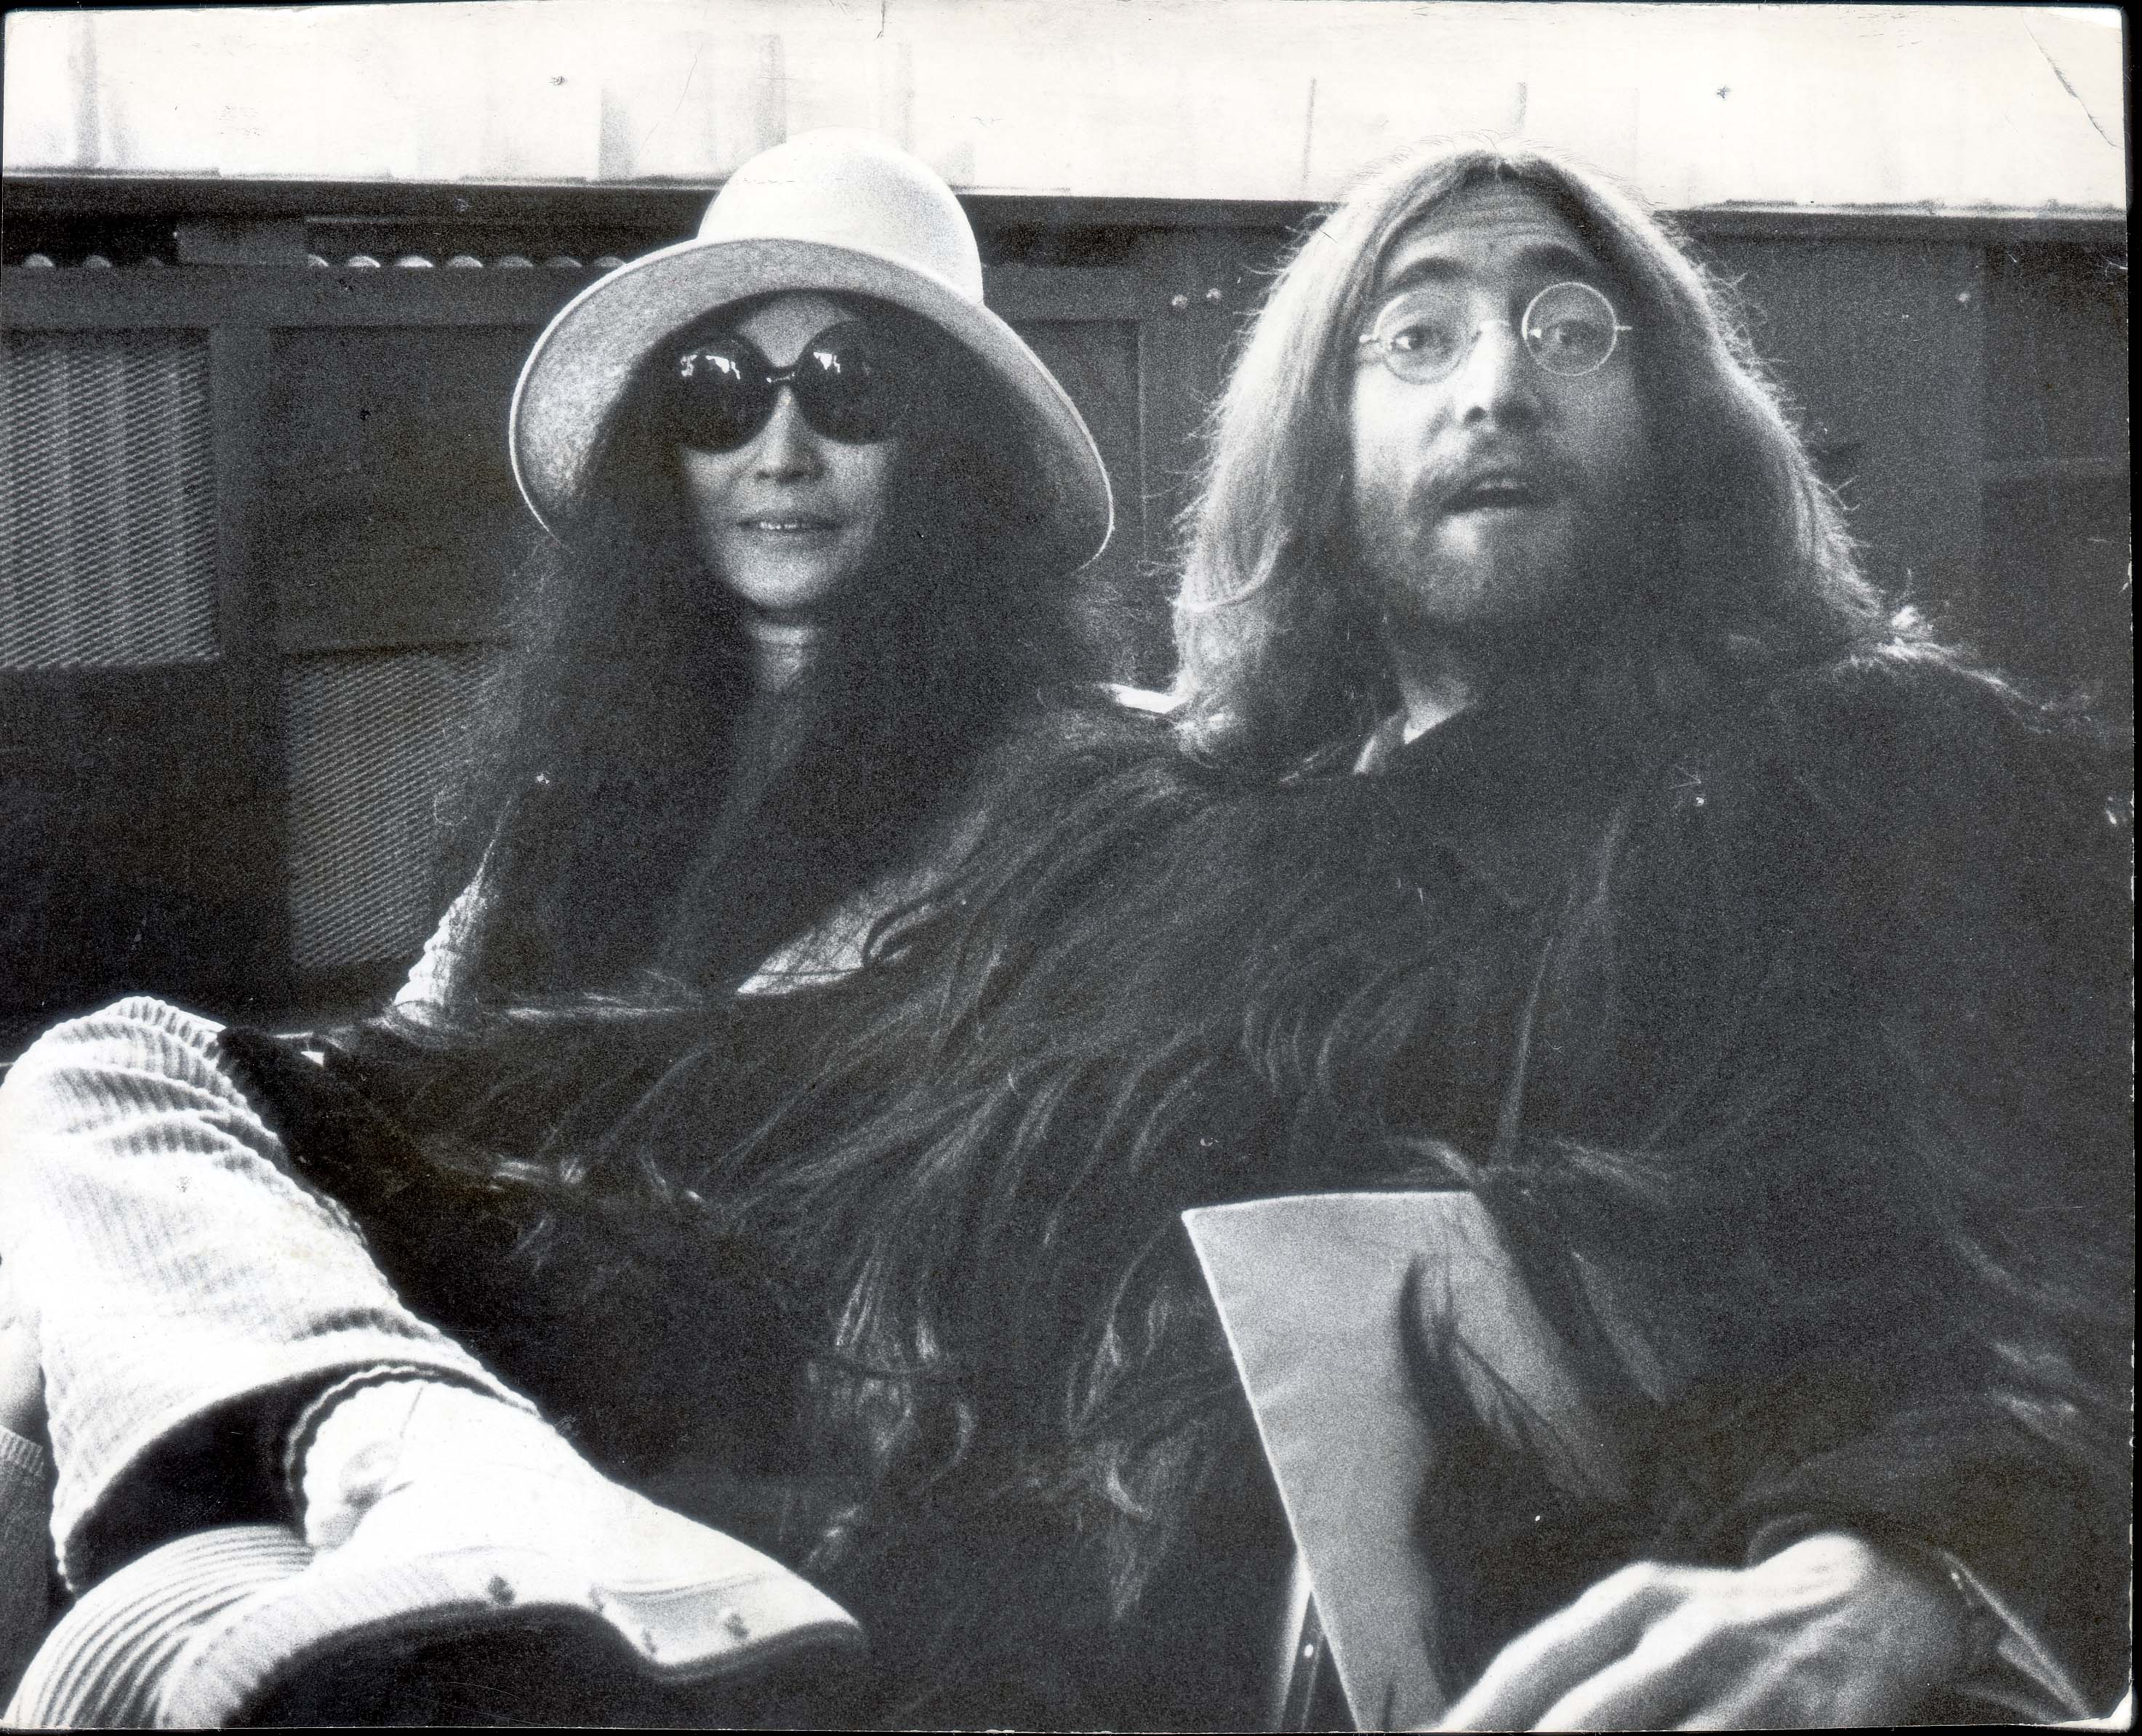 John Lennon And His Wife Yoko Ono Pictured Arriving In Paris Following Their Wedding In Gibraltar In 1969. John Lennon And His Wife Yoko Ono Pictured Arriving In Paris Following Their Wedding In Gibraltar In 1969.